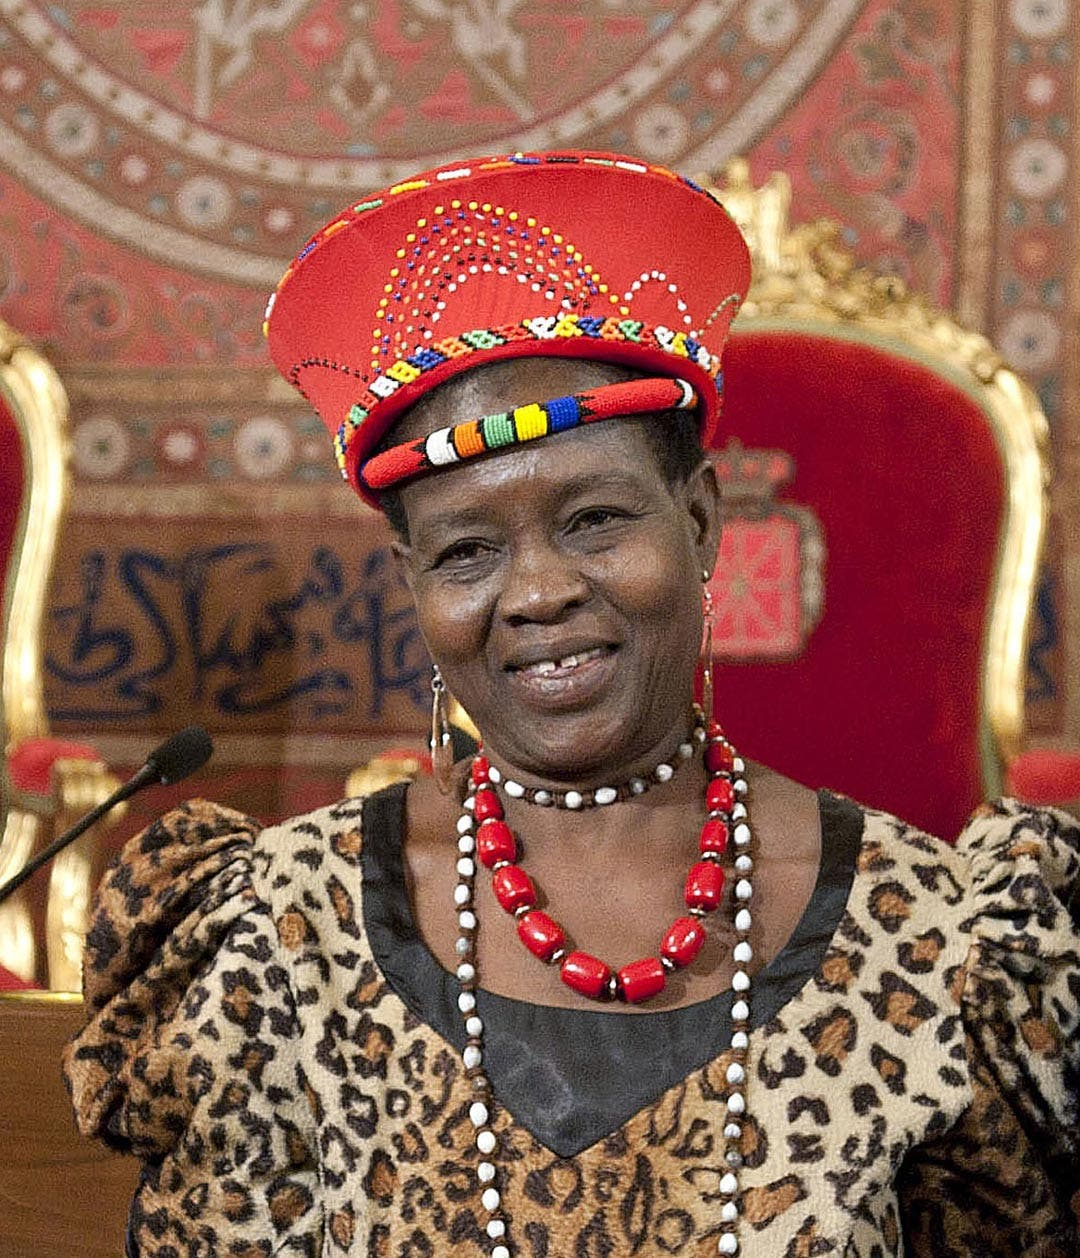 Malawi female chief comes to power, annuls over 1500 child marriages, and sends young girls back to school